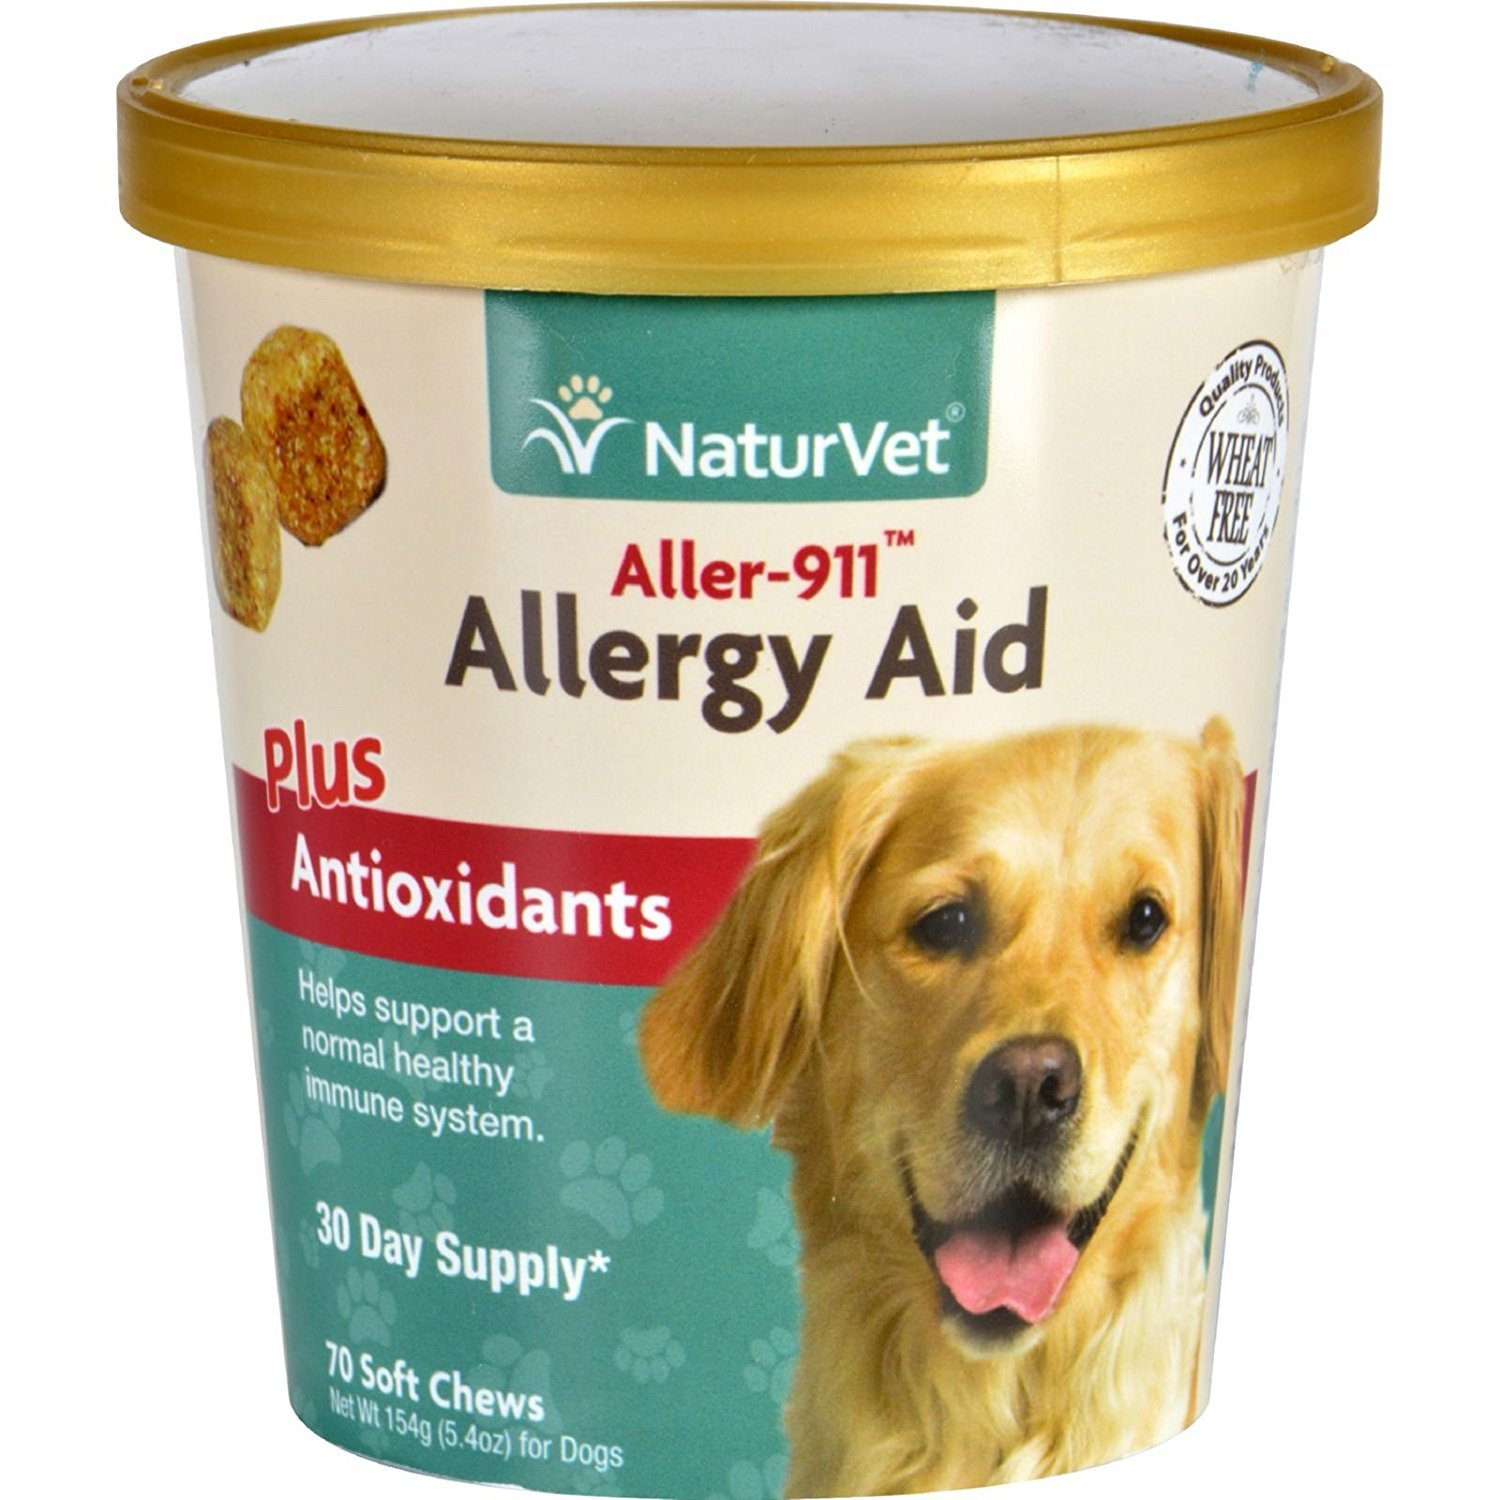 NaturVet 70 Count Aller-911 Allergy Aid Plus Antioxidants Soft Chews 5.40 oz (154 g)-(2 pack )